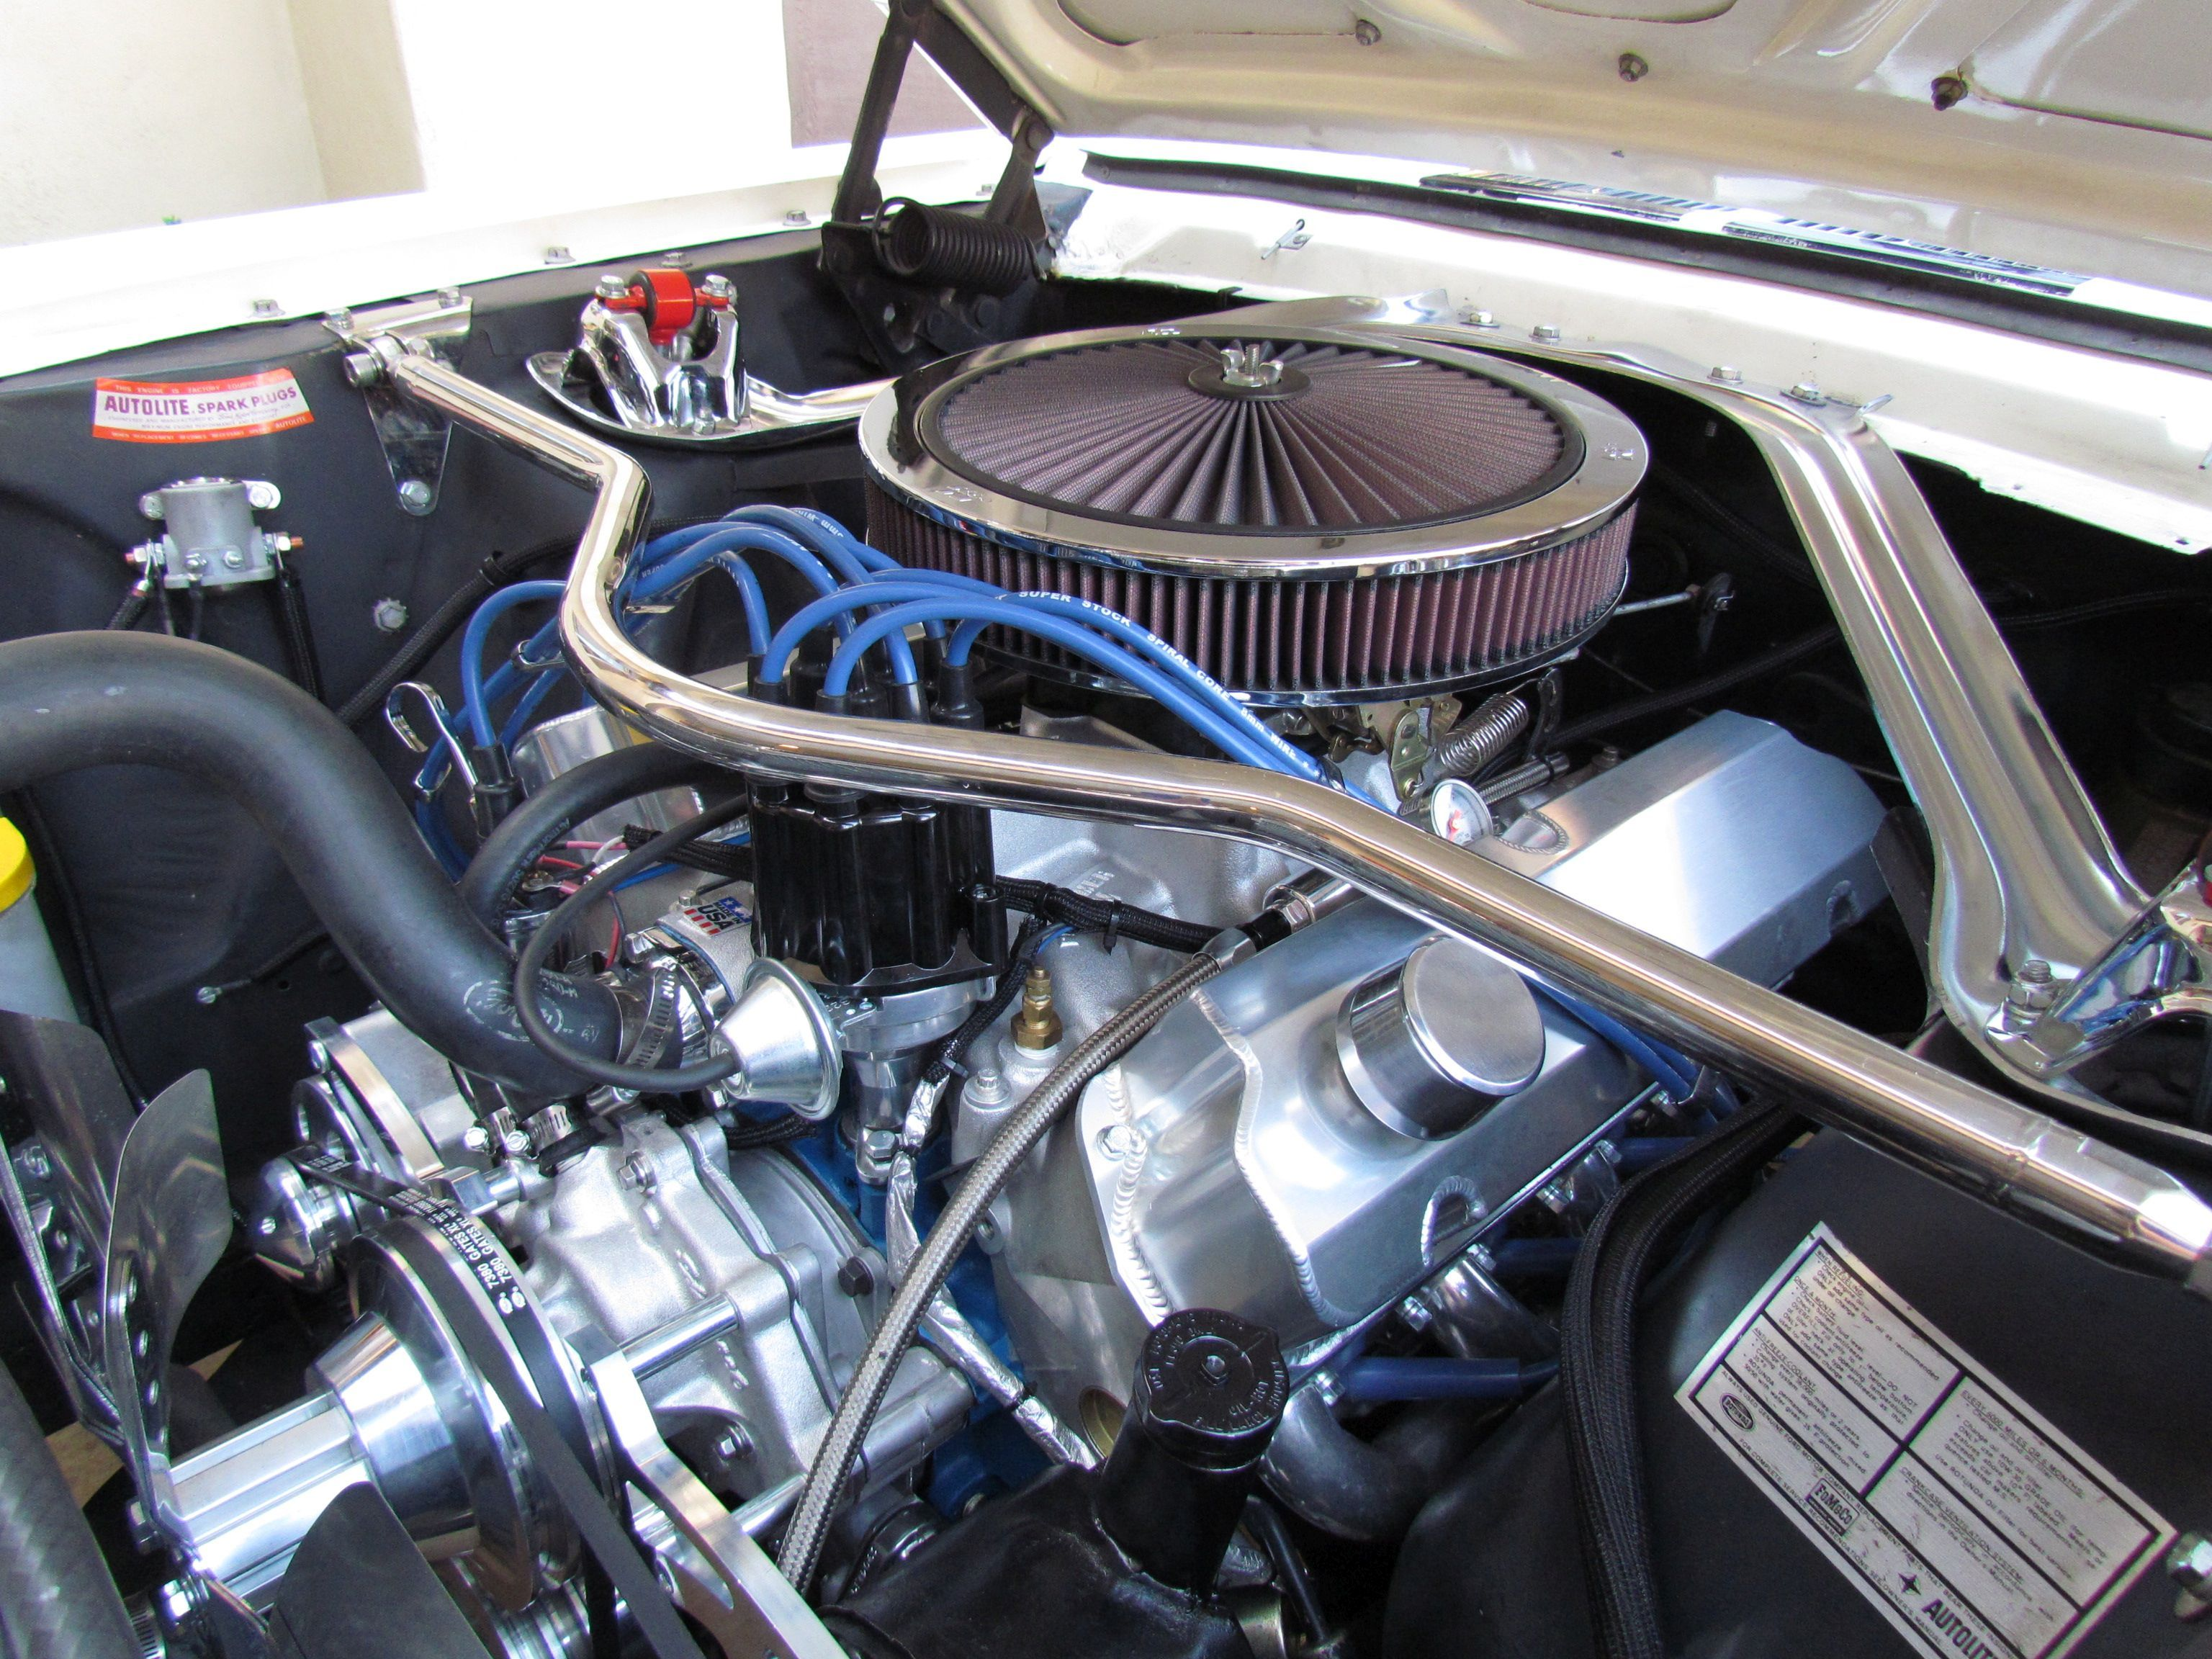 Blueprint engines customer josh clark has installed our bp3474ct blueprint engines customer josh clark has installed our bp3474ct into his 1966 ford mustang fastback nice looking ride you have there malvernweather Choice Image